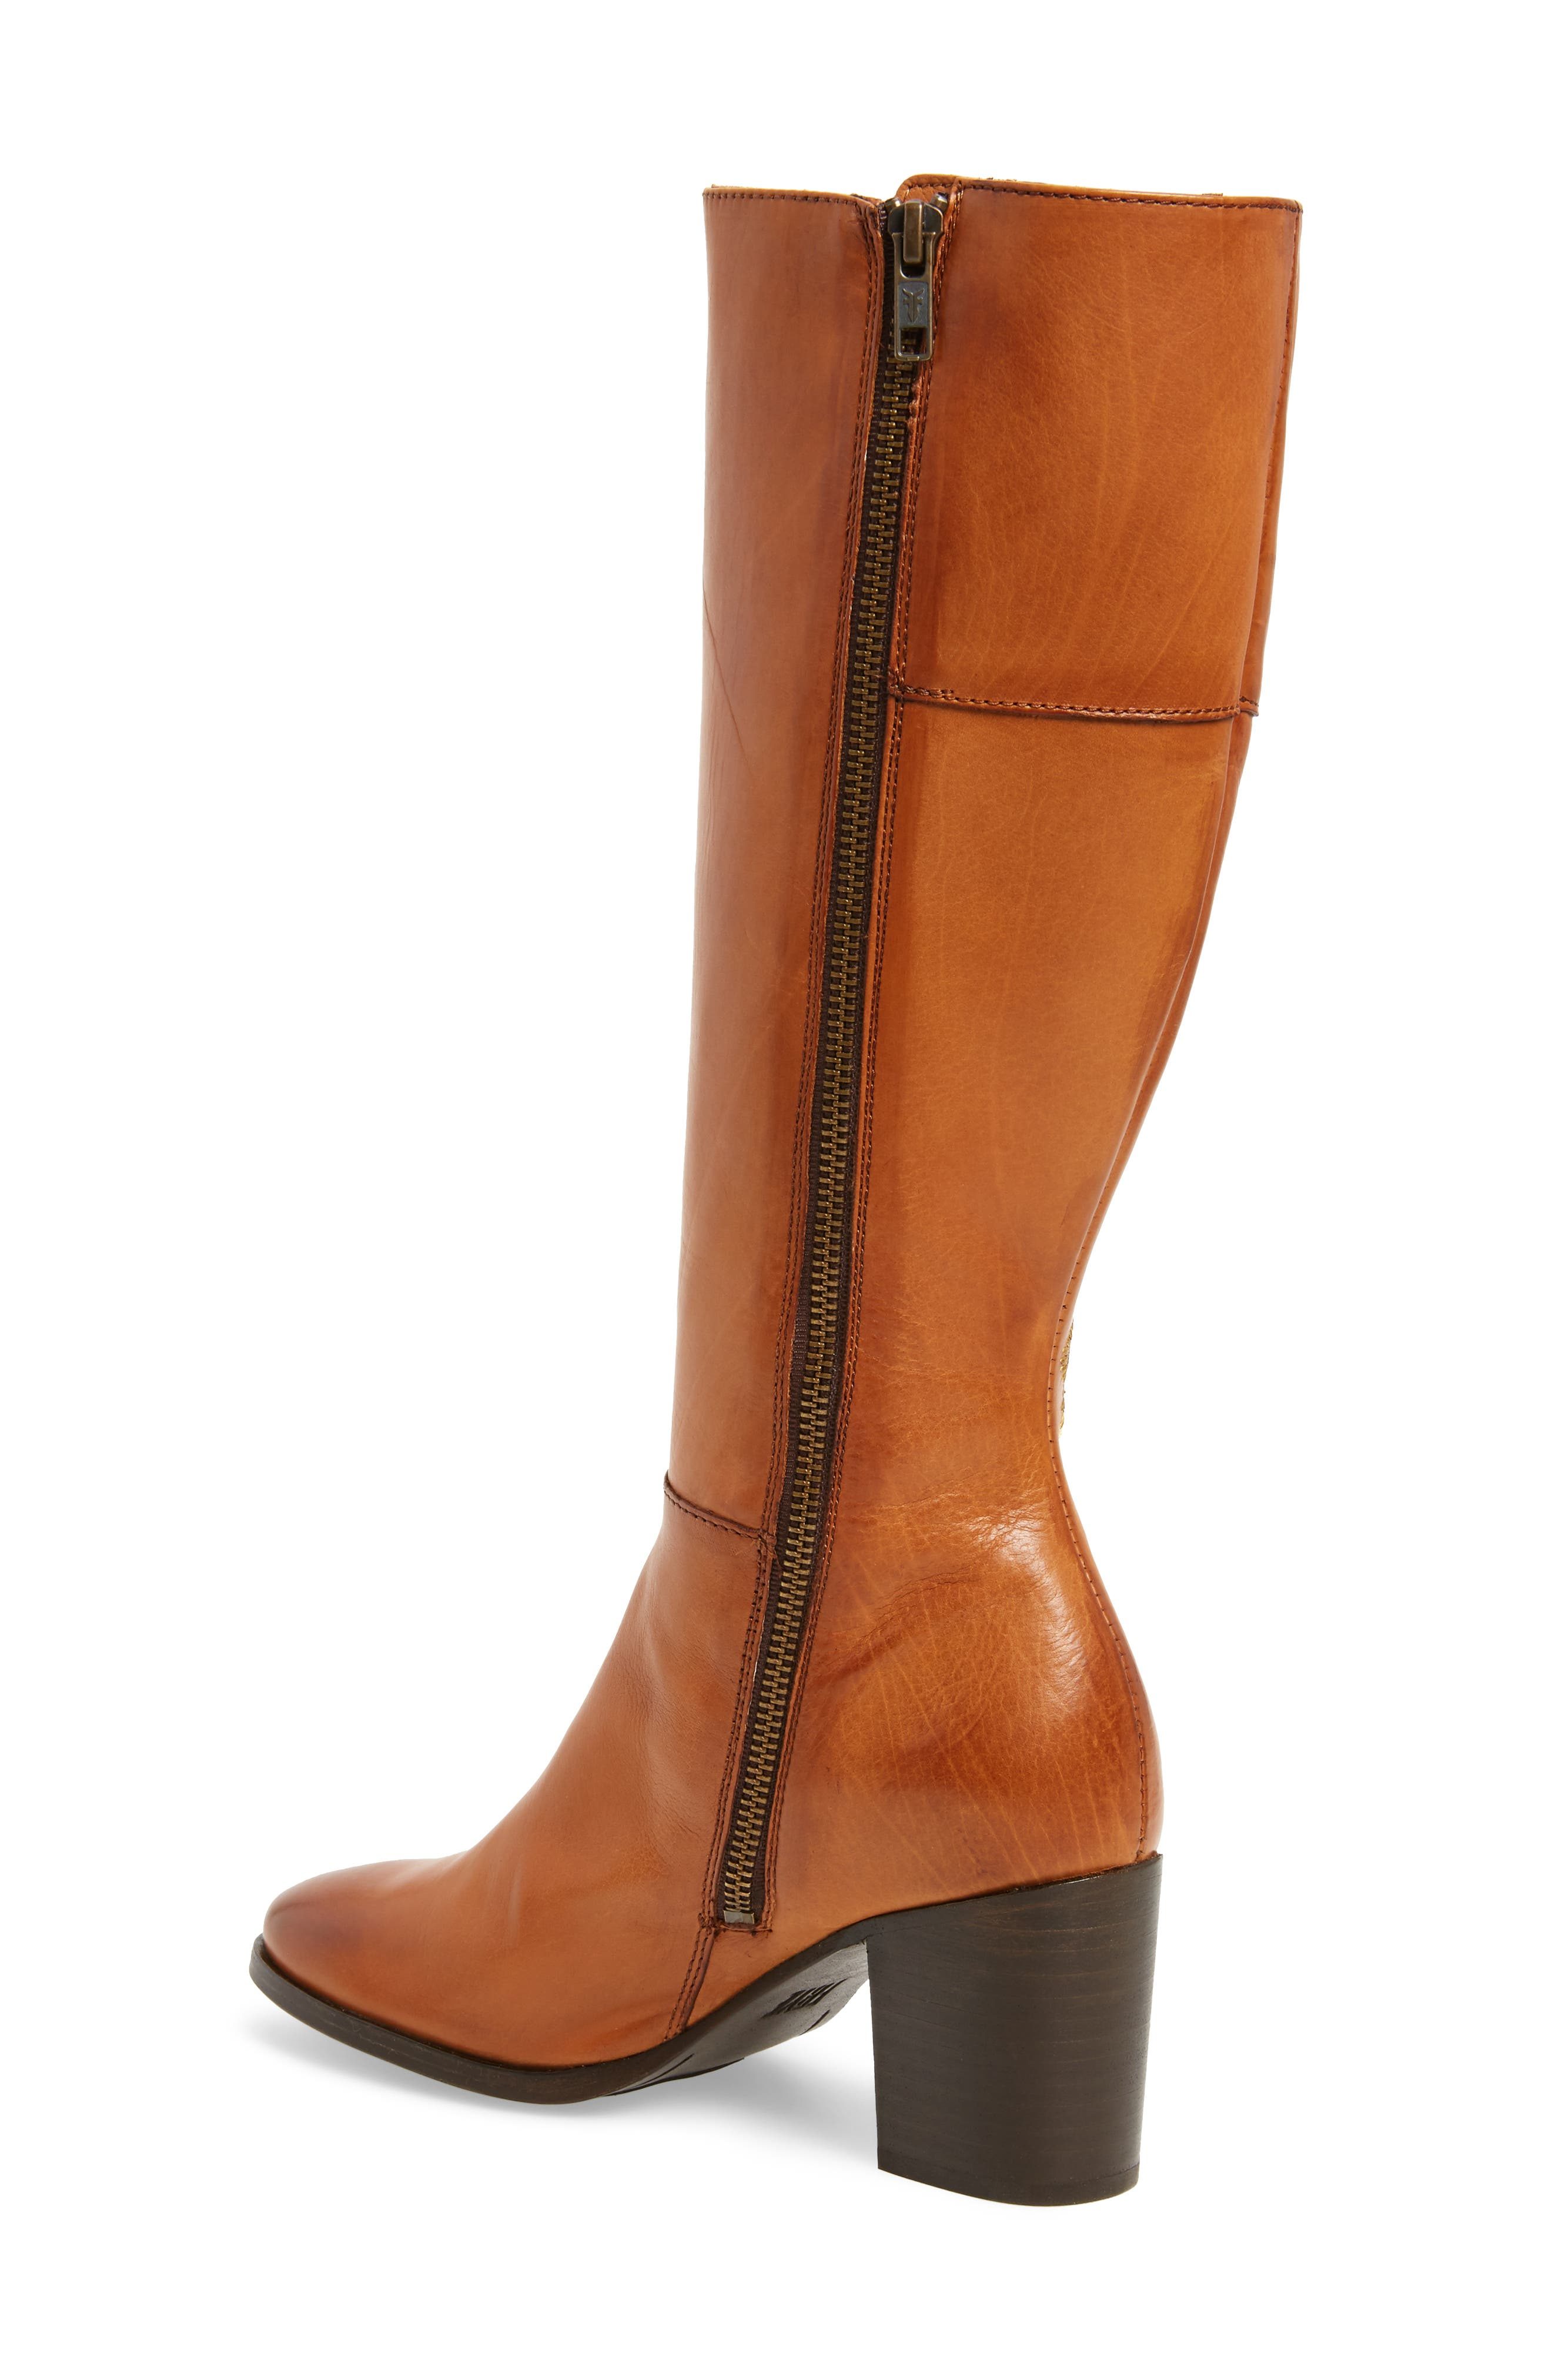 Nova Floral Embroidered Knee High Boot,                             Alternate thumbnail 2, color,                             Cognac Fabric